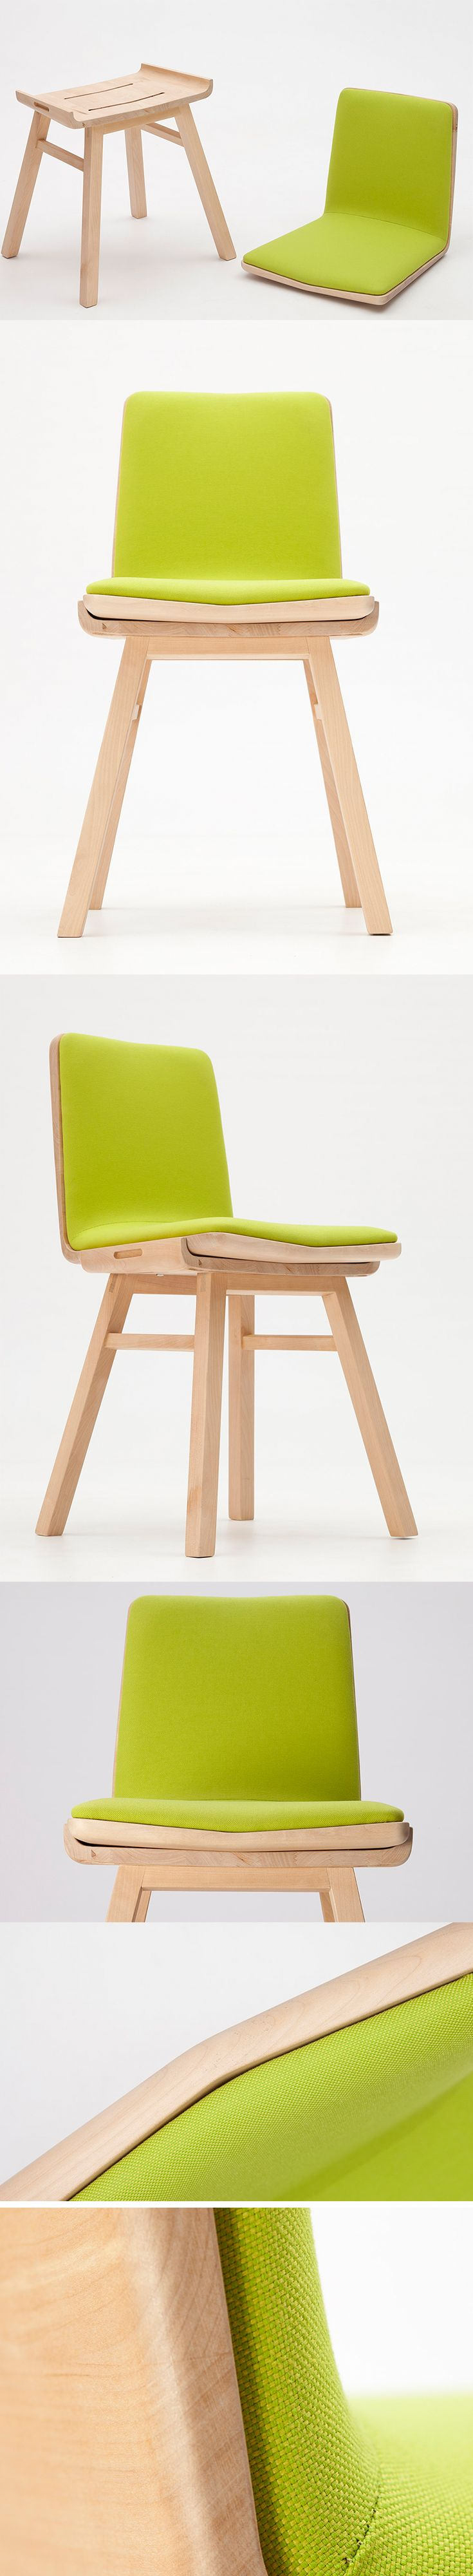 The Dividi chair as the name suggests is a clever design that